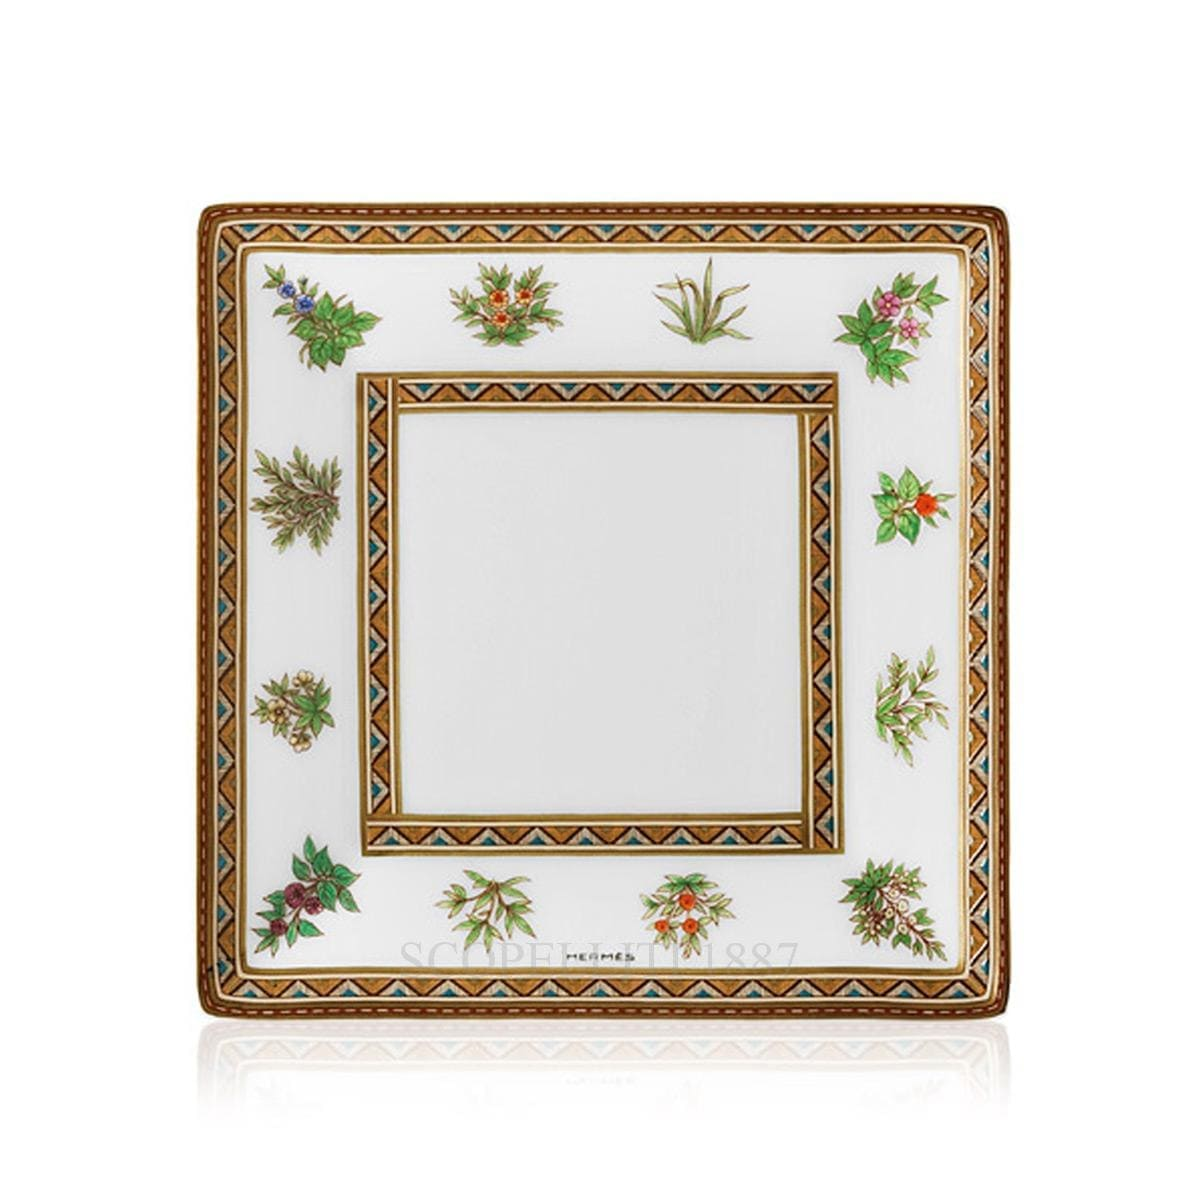 Hermes Cheval d'Orient Square Plate n°2